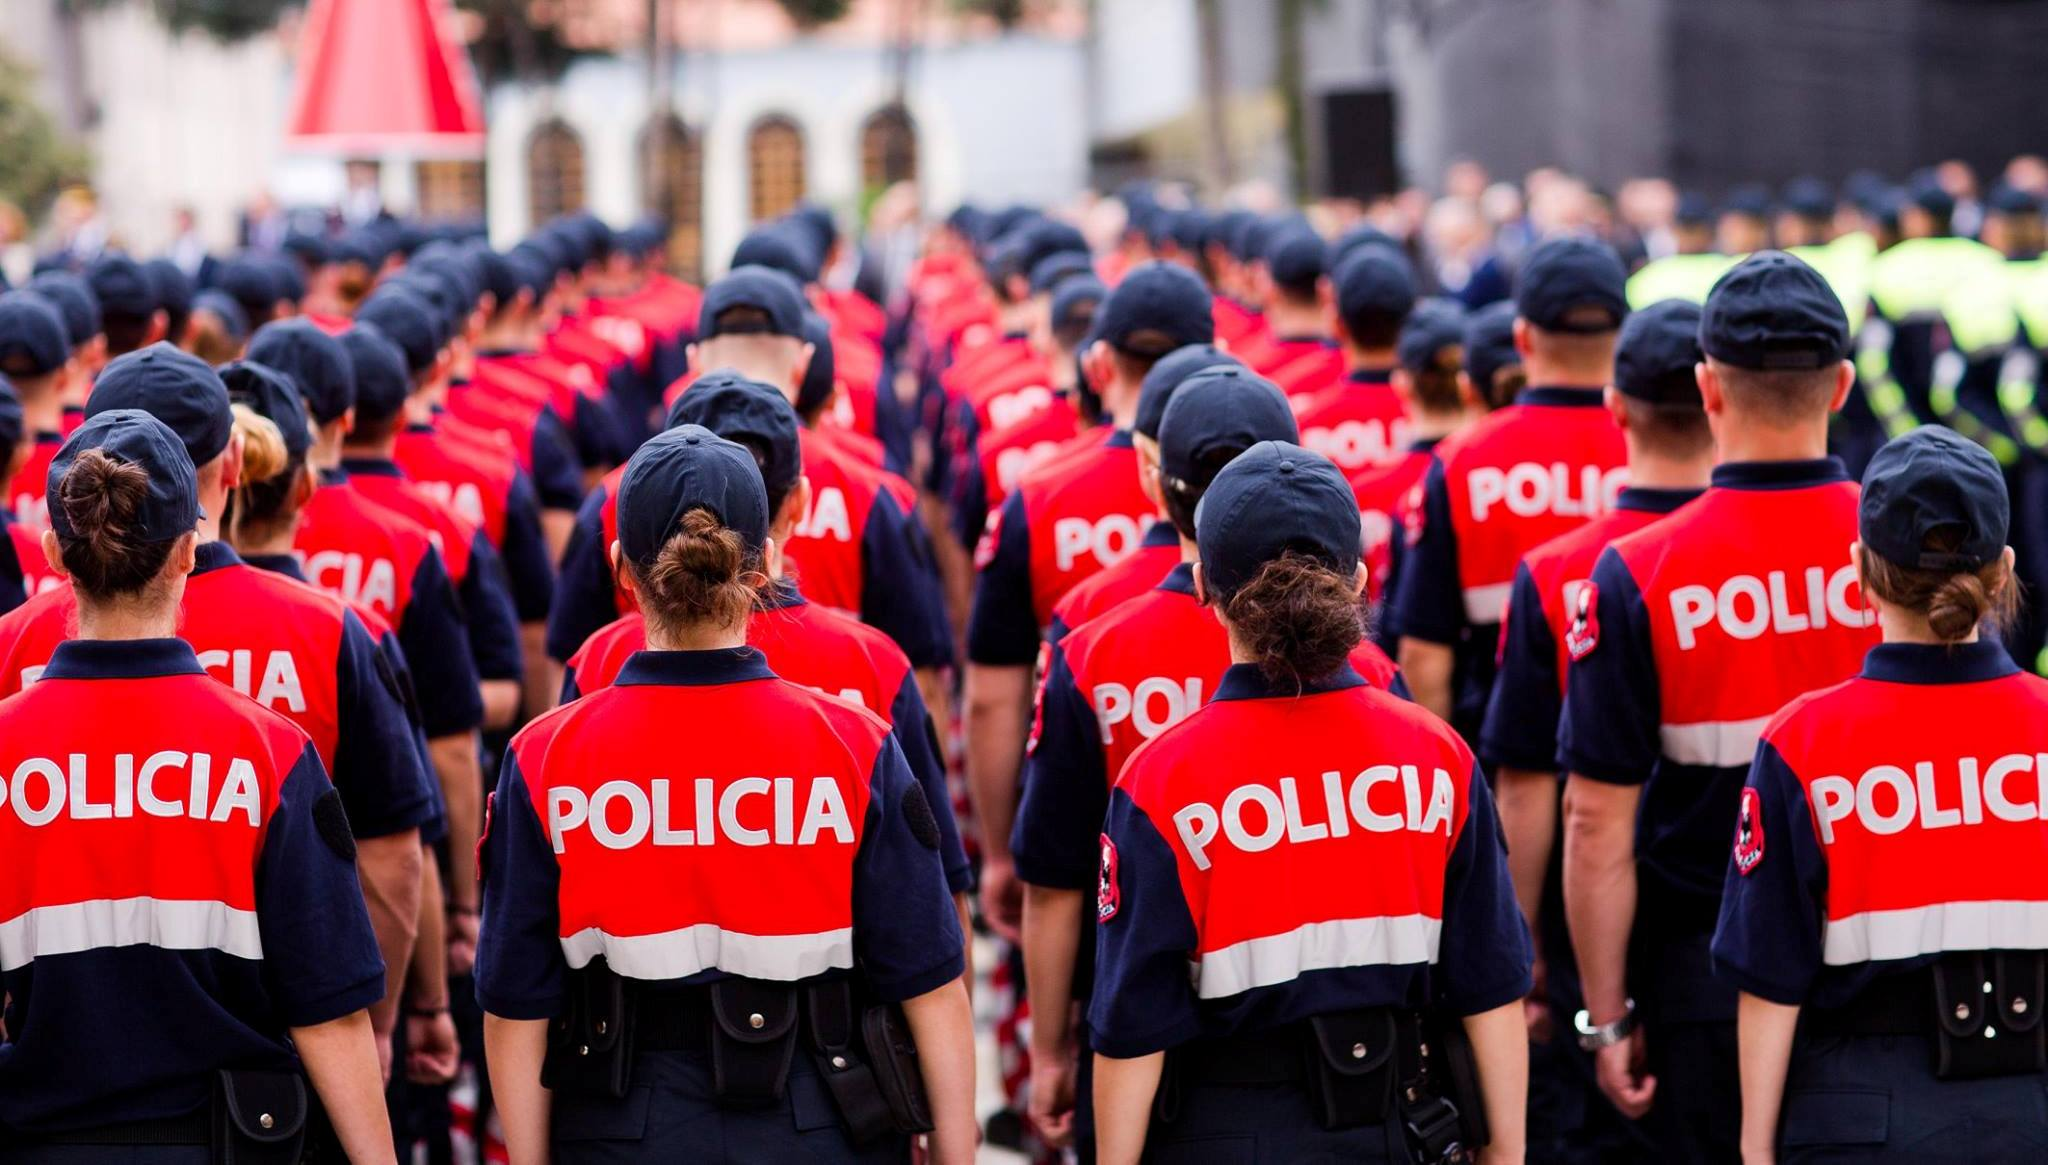 Albanian Government Proposes Law Granting Police Unchecked Surveillance Powers